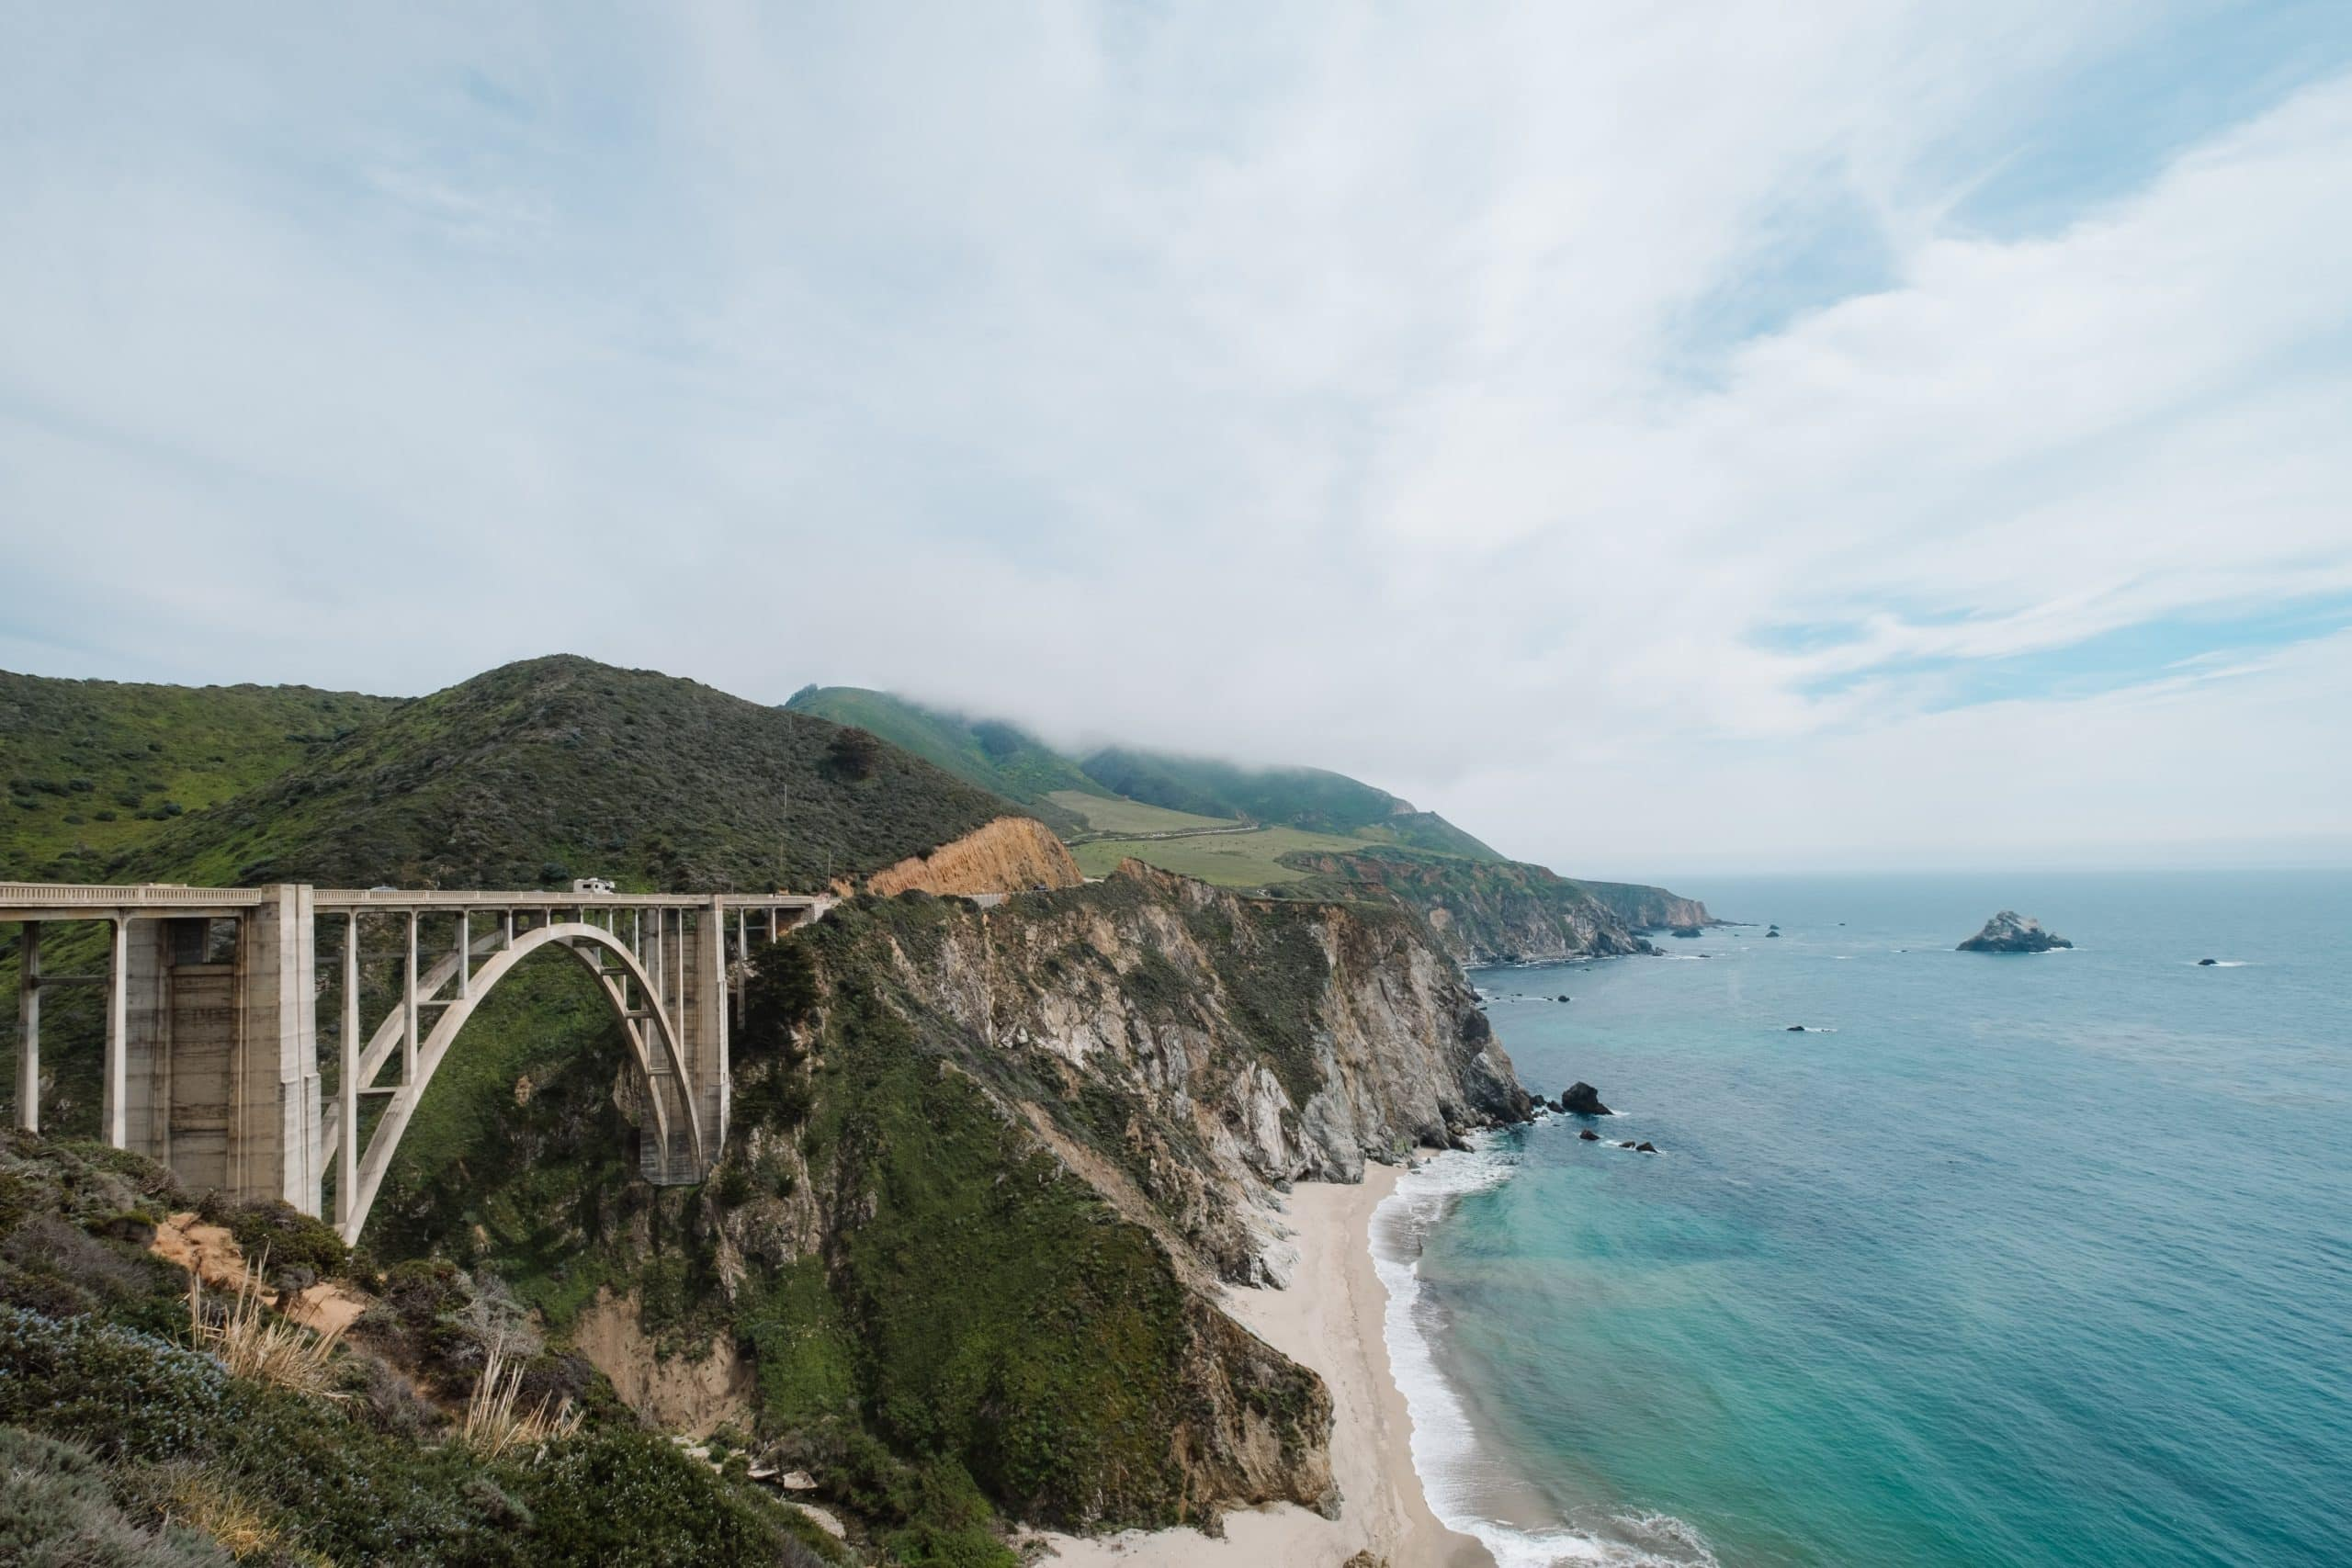 The Big Sur bridge in California.